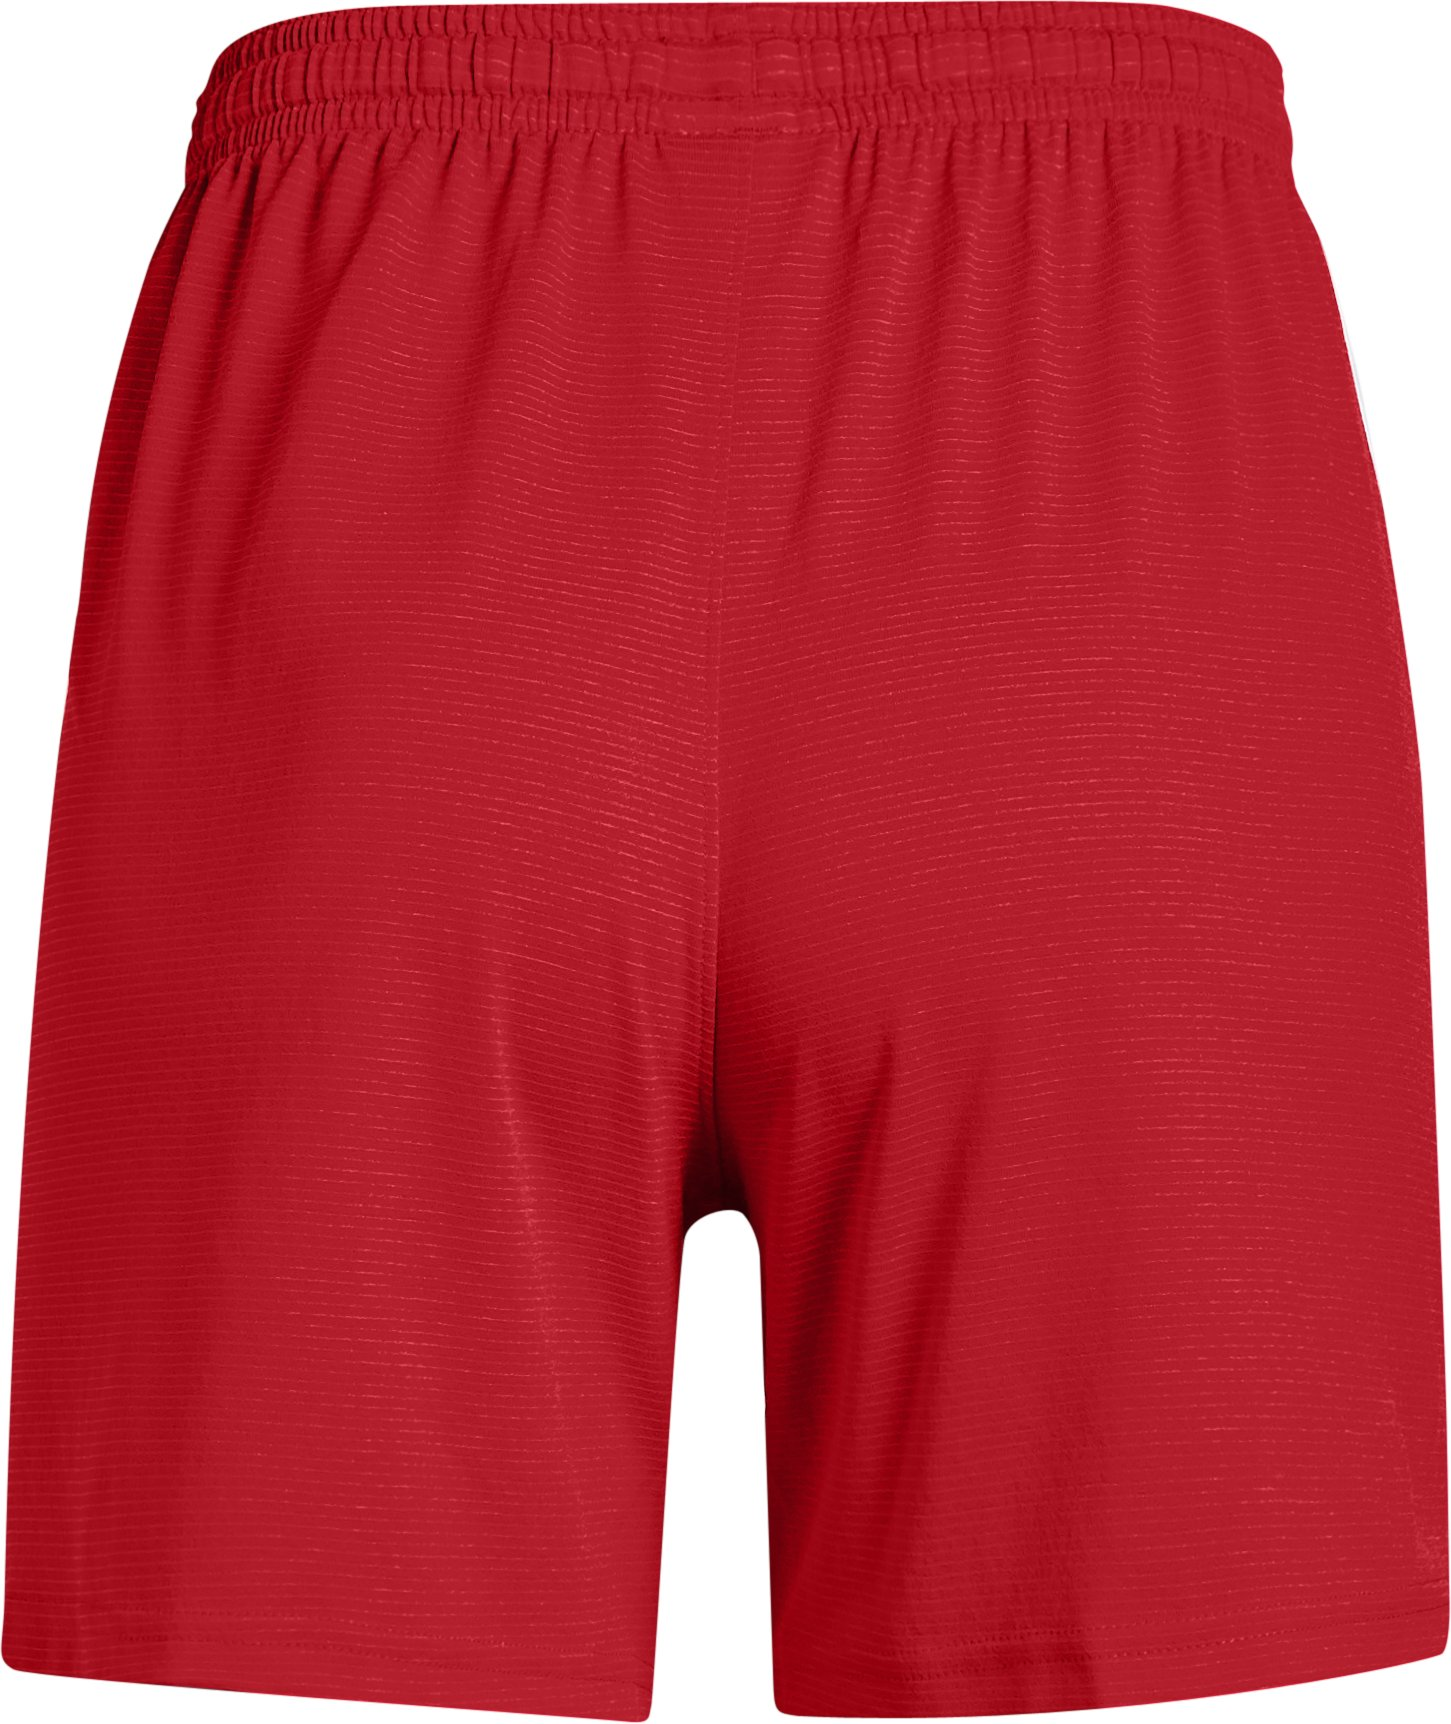 Women's UA Microthread Match Shorts, Red,